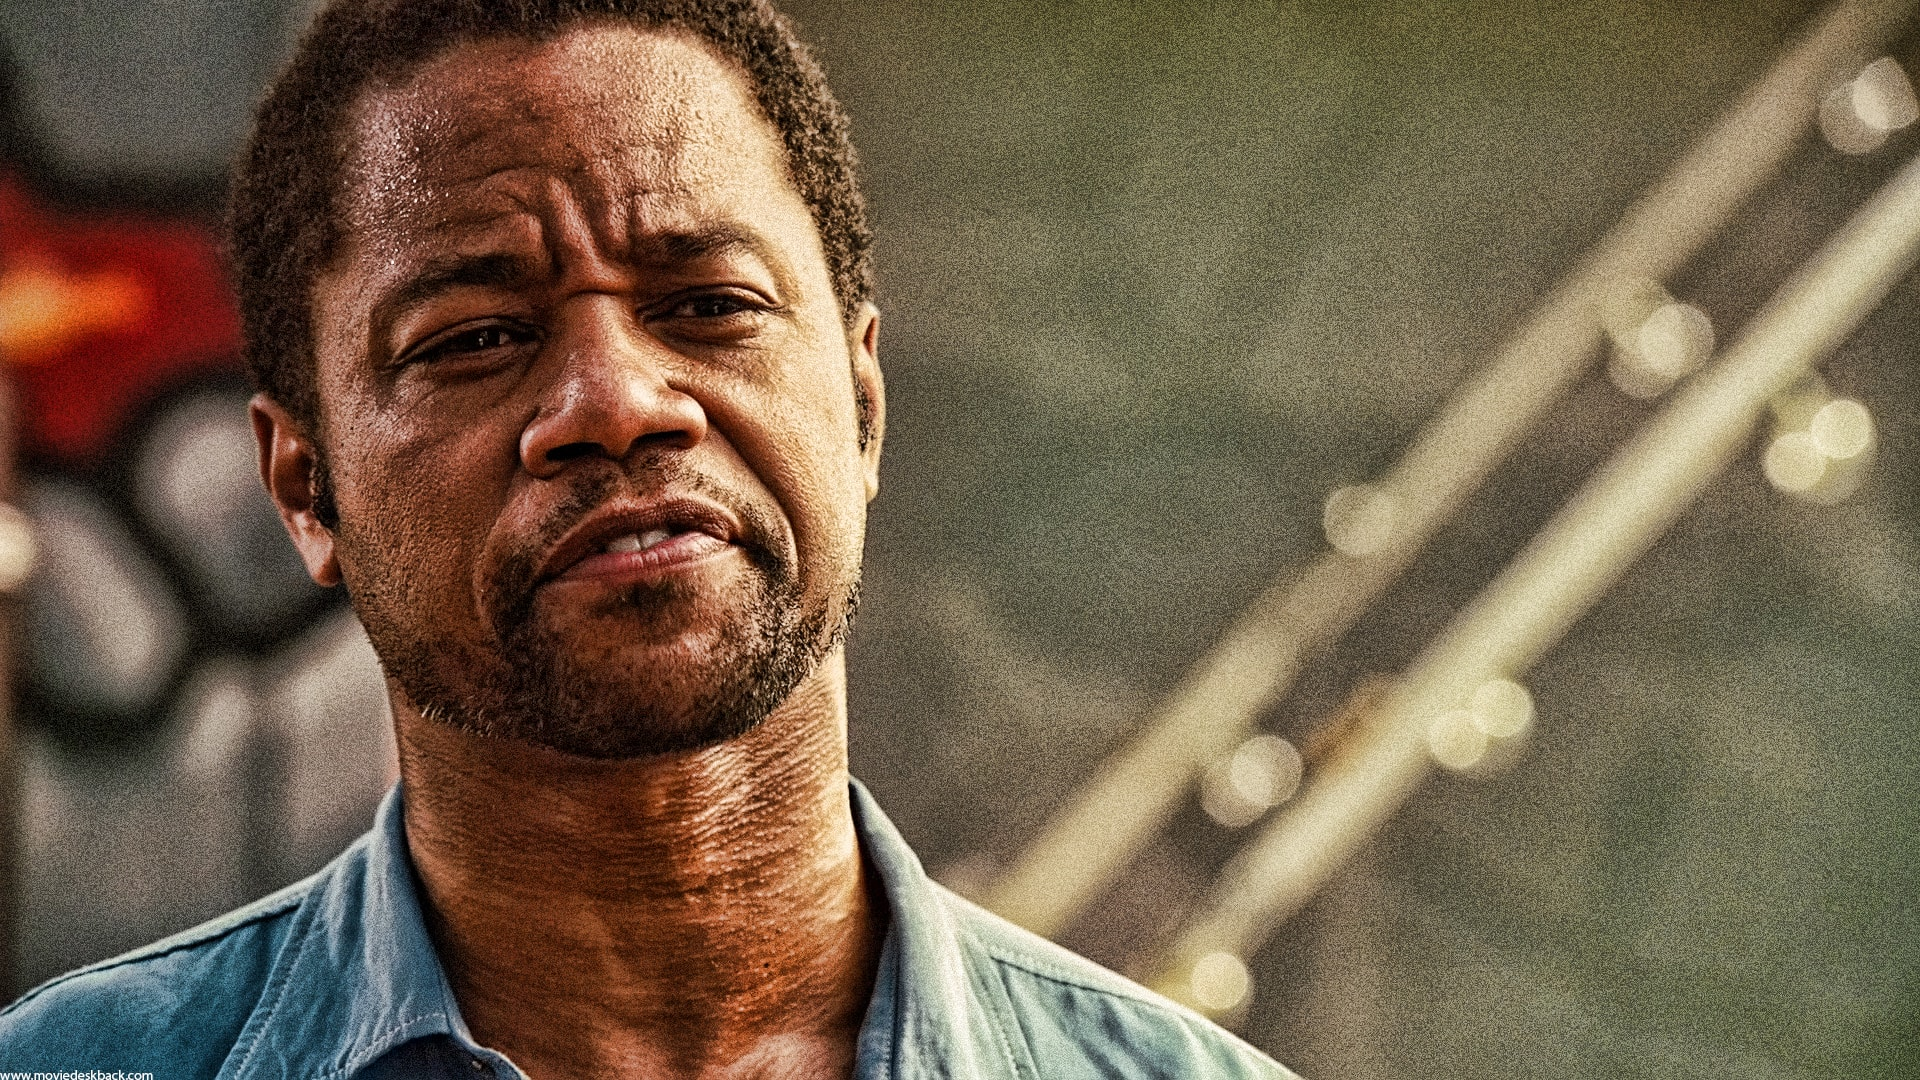 Cuba Gooding Jr. Widescreen for desktop